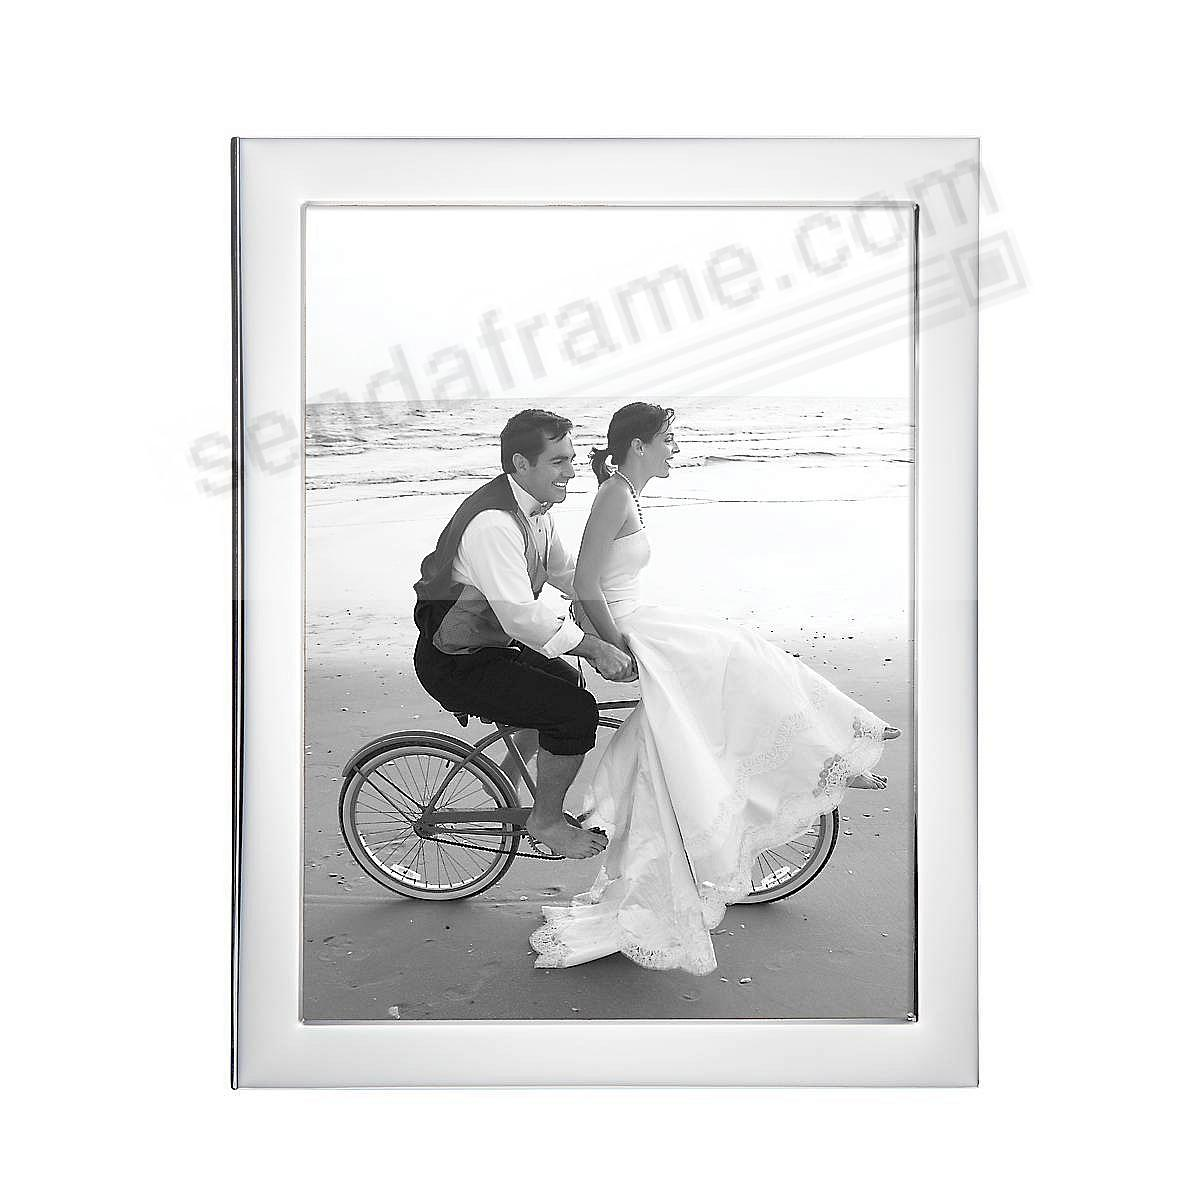 Reed & Barton® Narrow Border Silver 8x10 frame - Engraveable